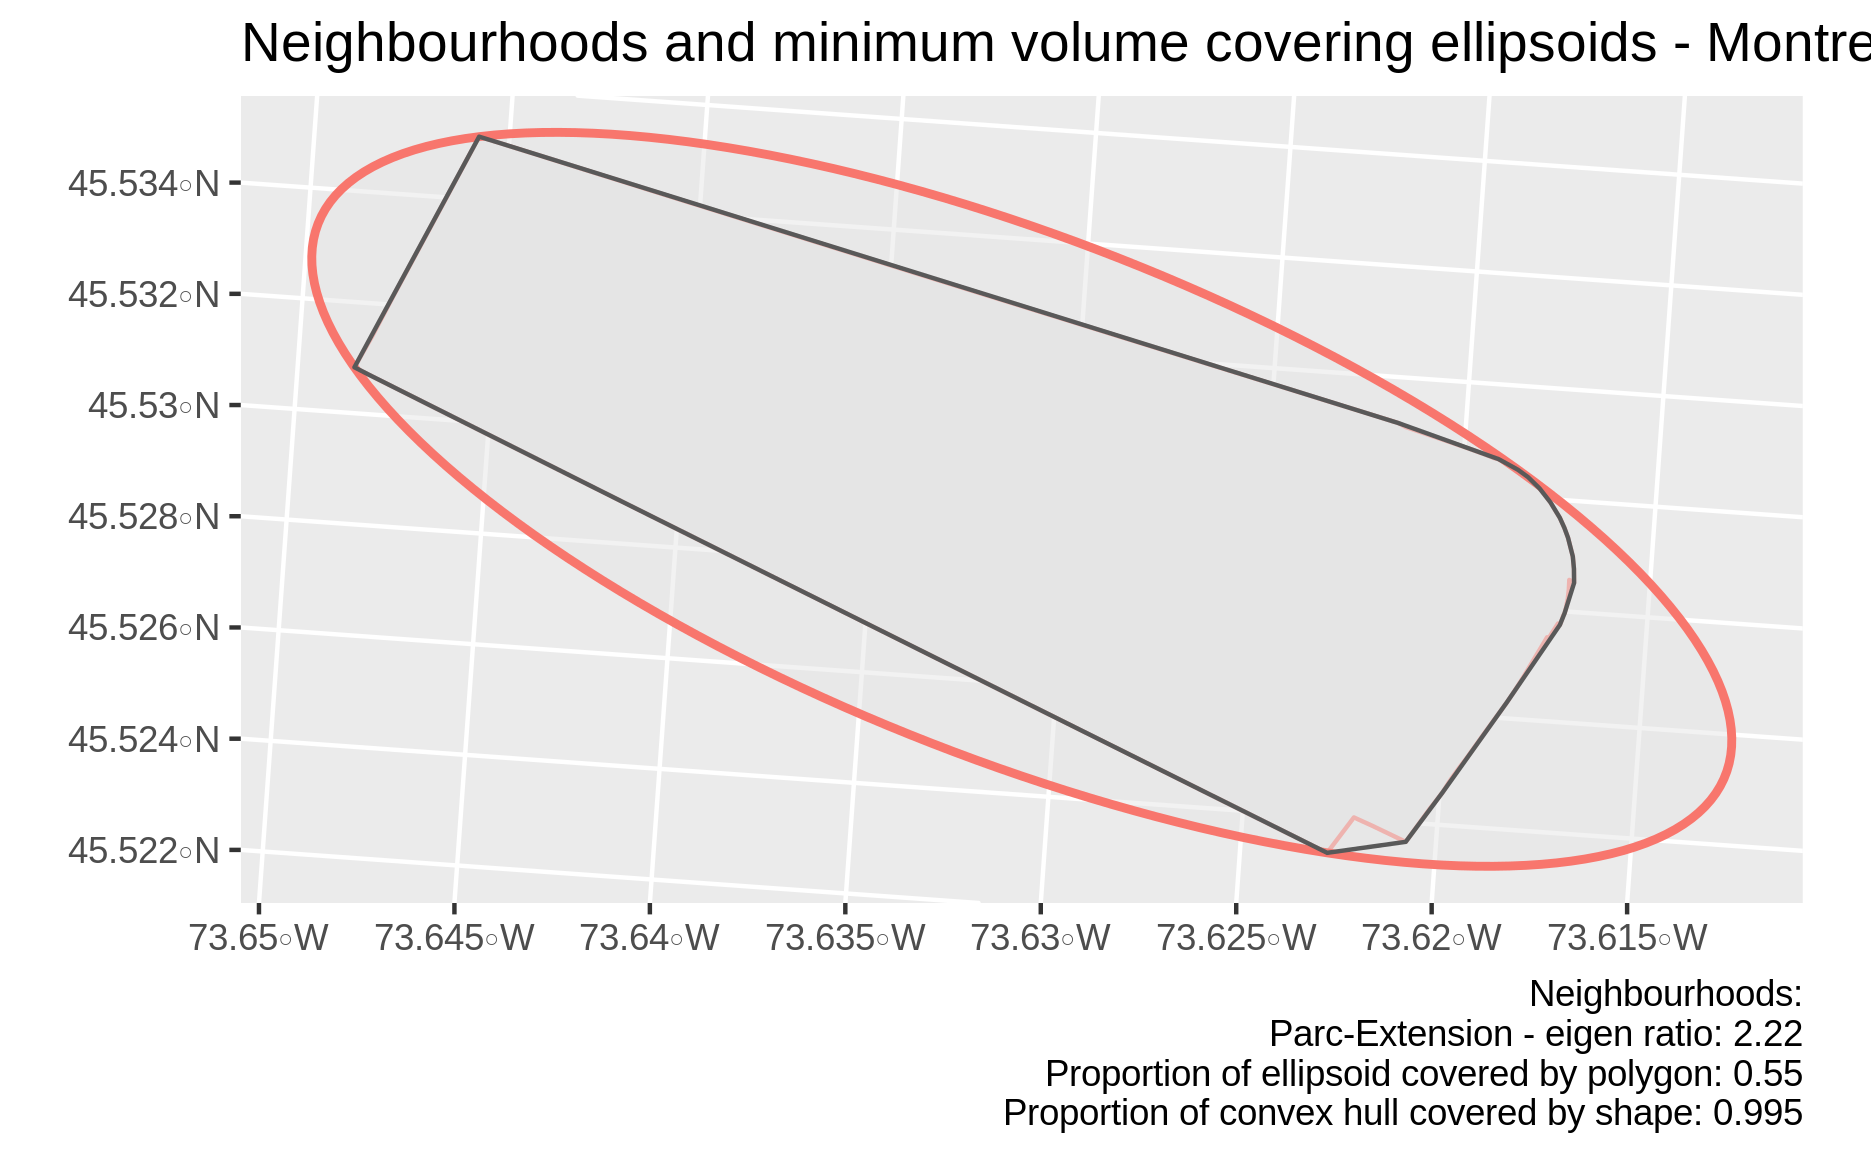 The most convex neighbourhood in Montreal is elongated